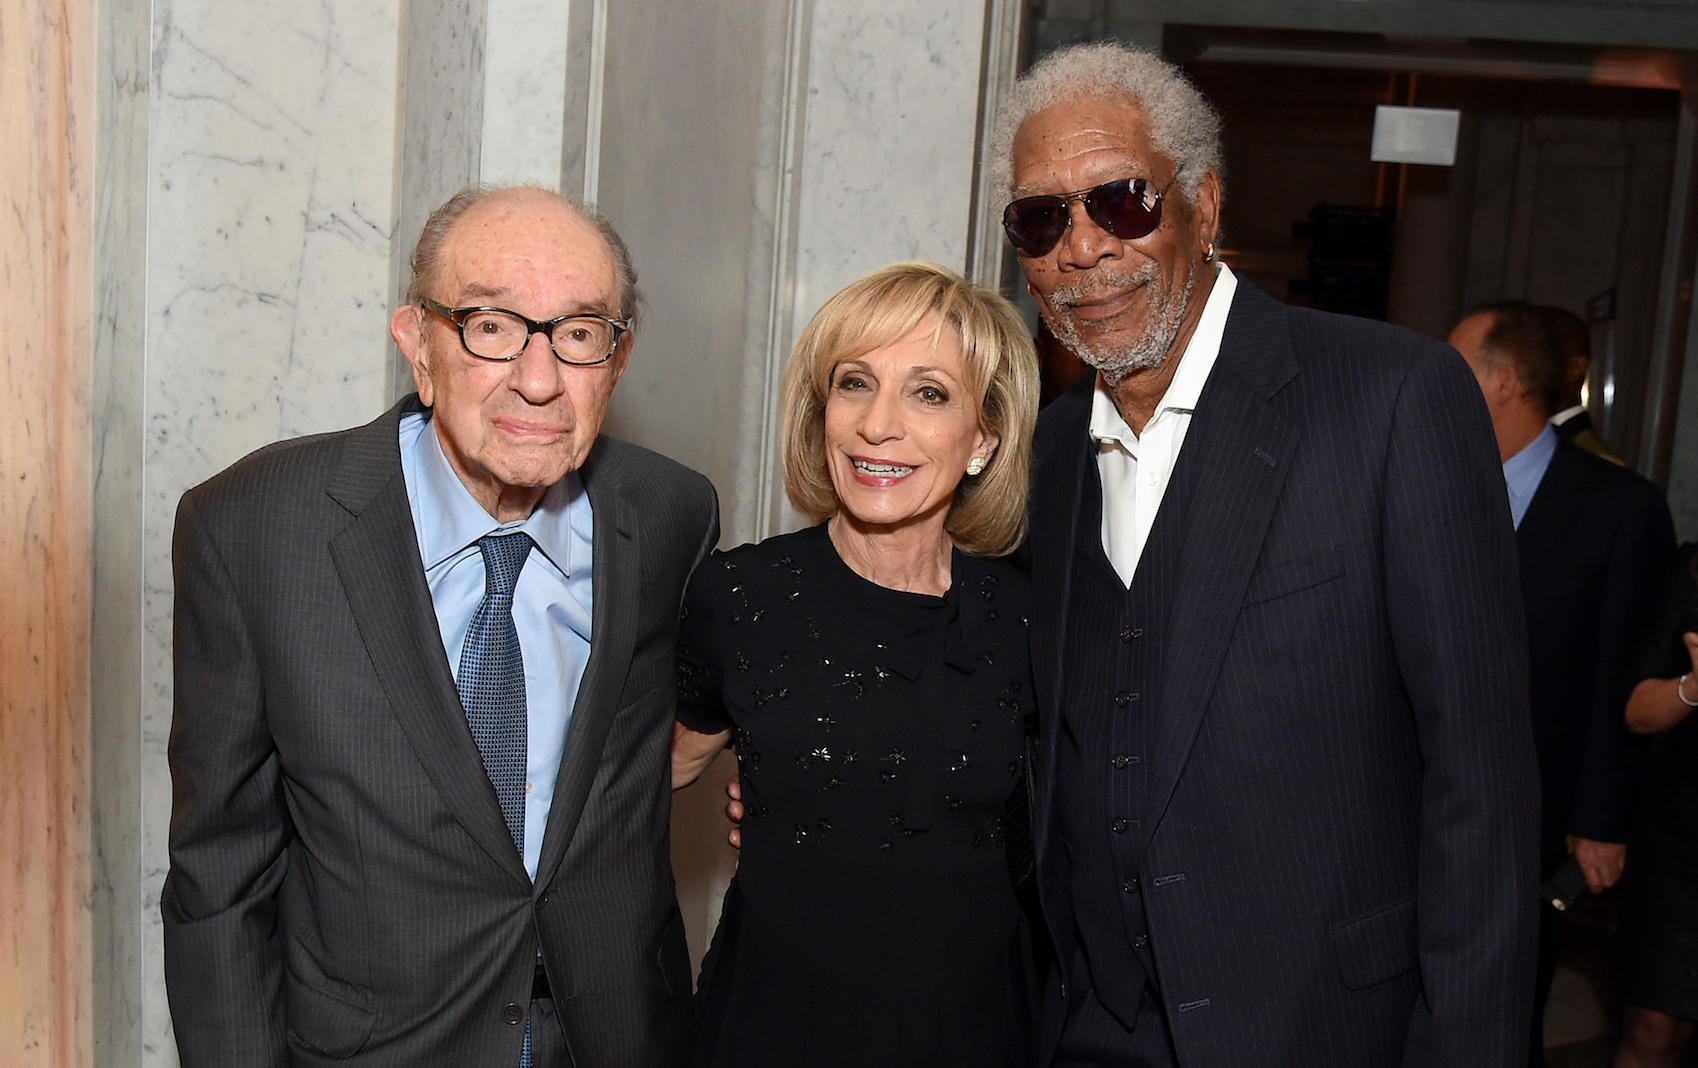 Former Chairman of the Federal Reserve Alan Greenspan, Andrea Mitchell and Morgan Freeman